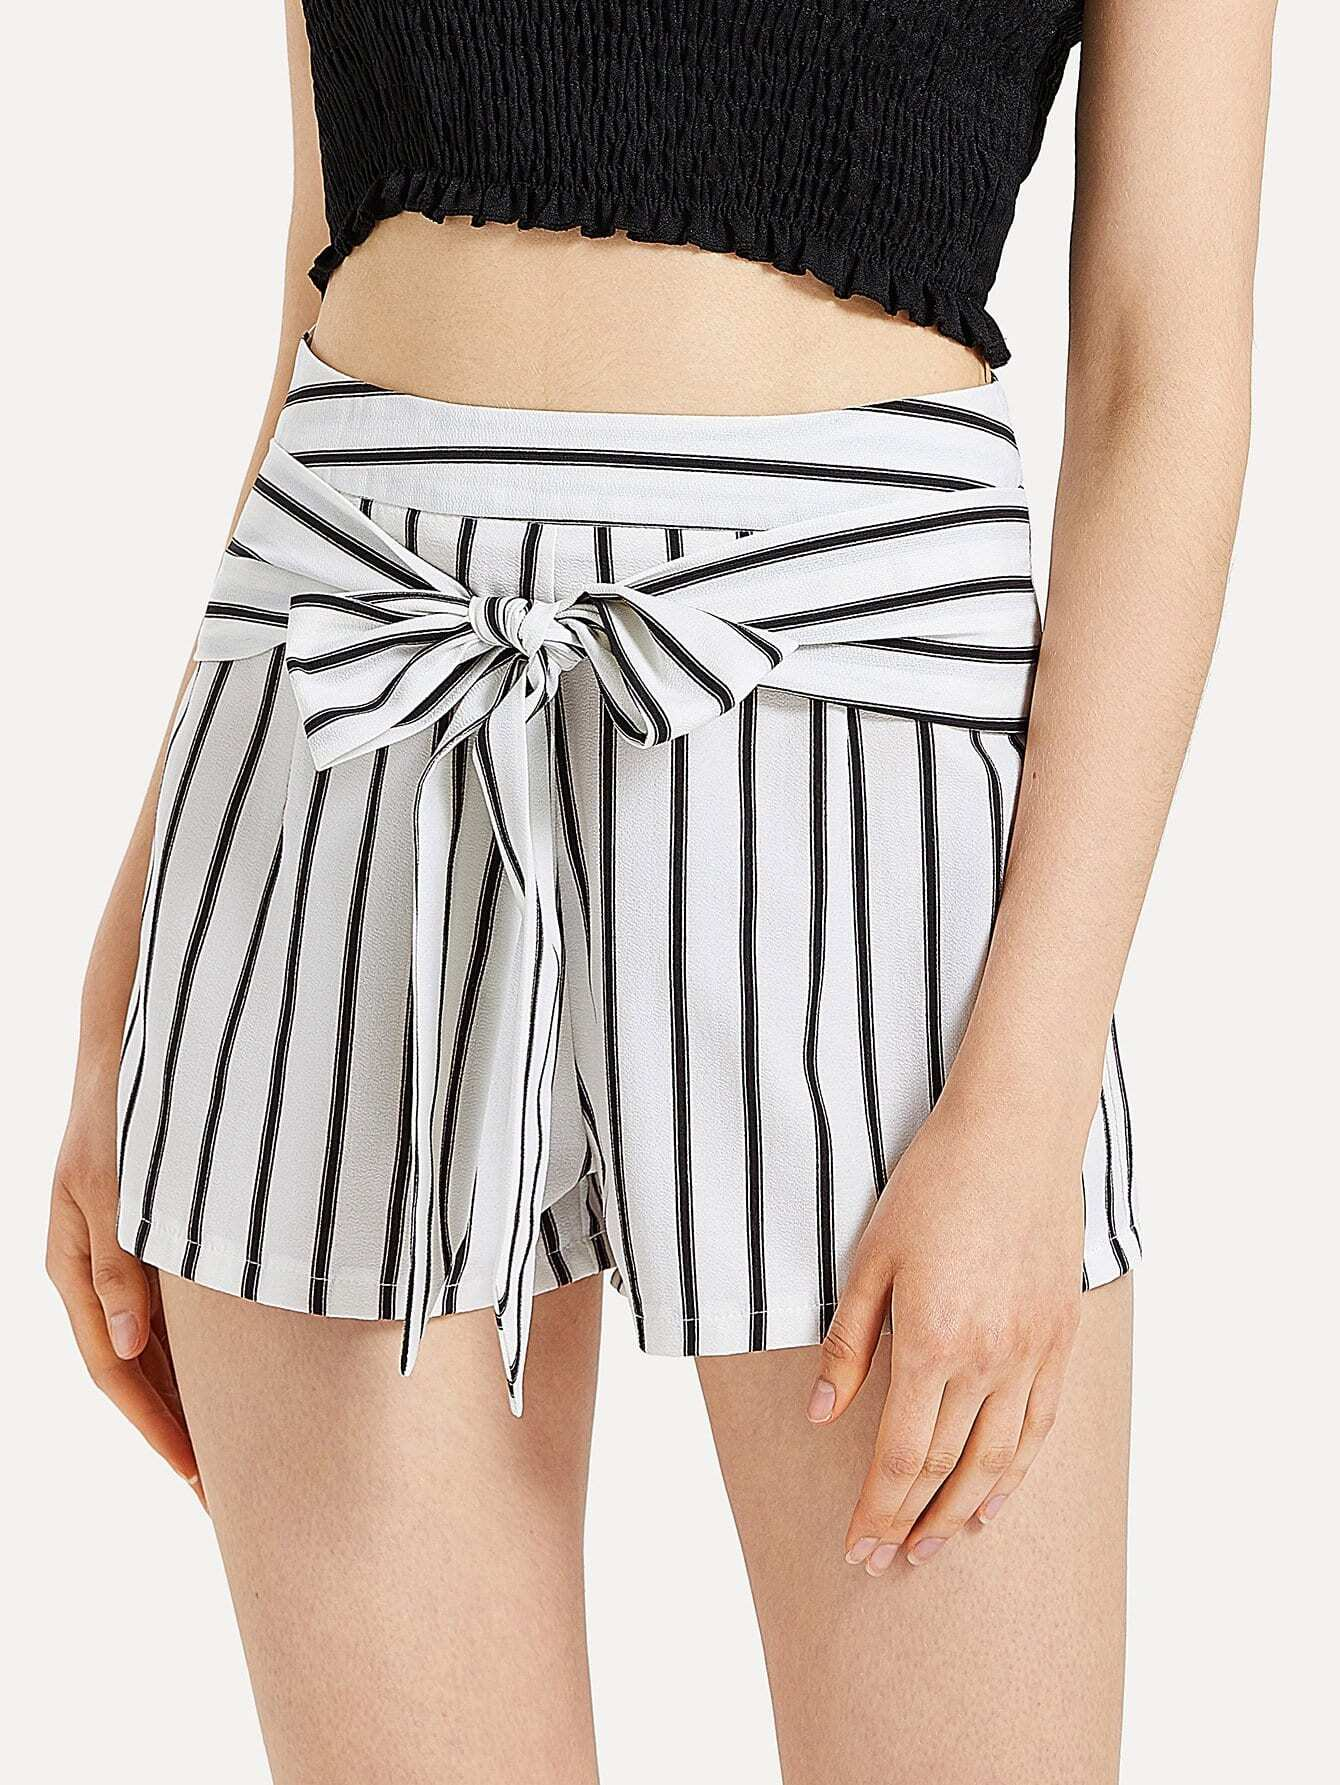 Bow Tie Front Striped Shorts inc new bright white women s size small s tie front button up blouse $59 461